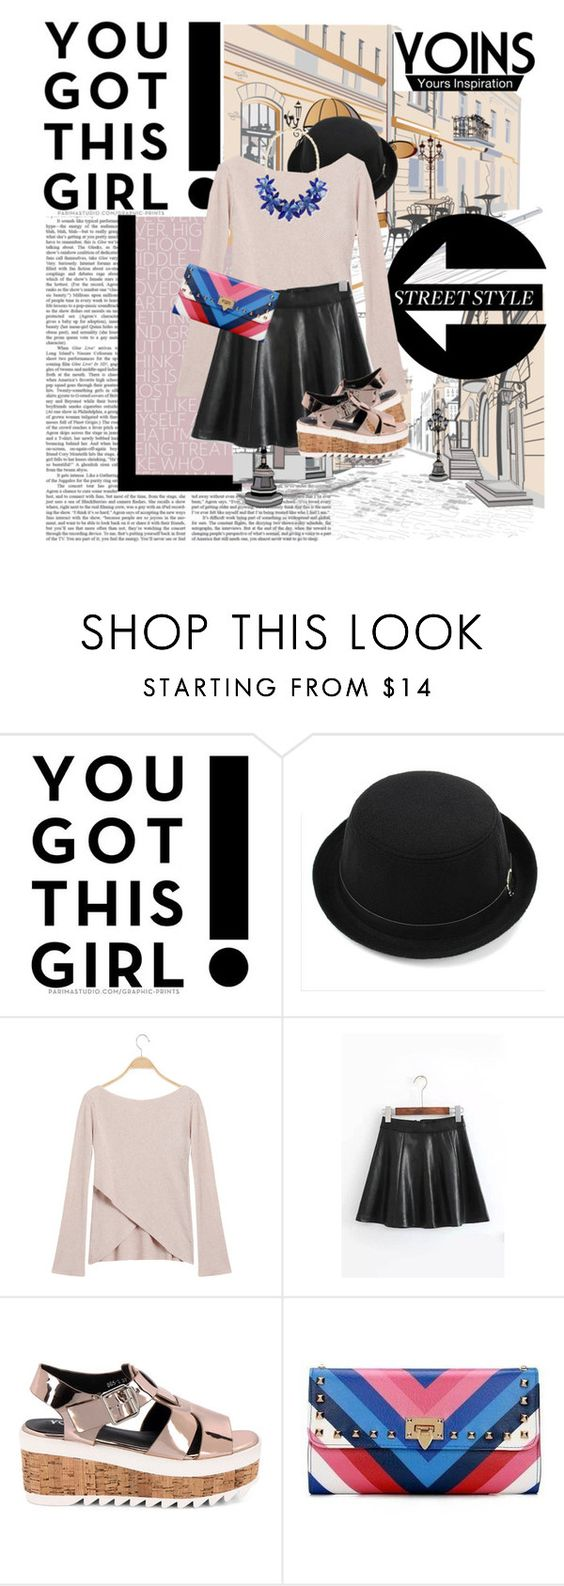 """Yoins street style"" by gabygirafe ❤ liked on Polyvore featuring Kate Spade, yoins and loveyoins"